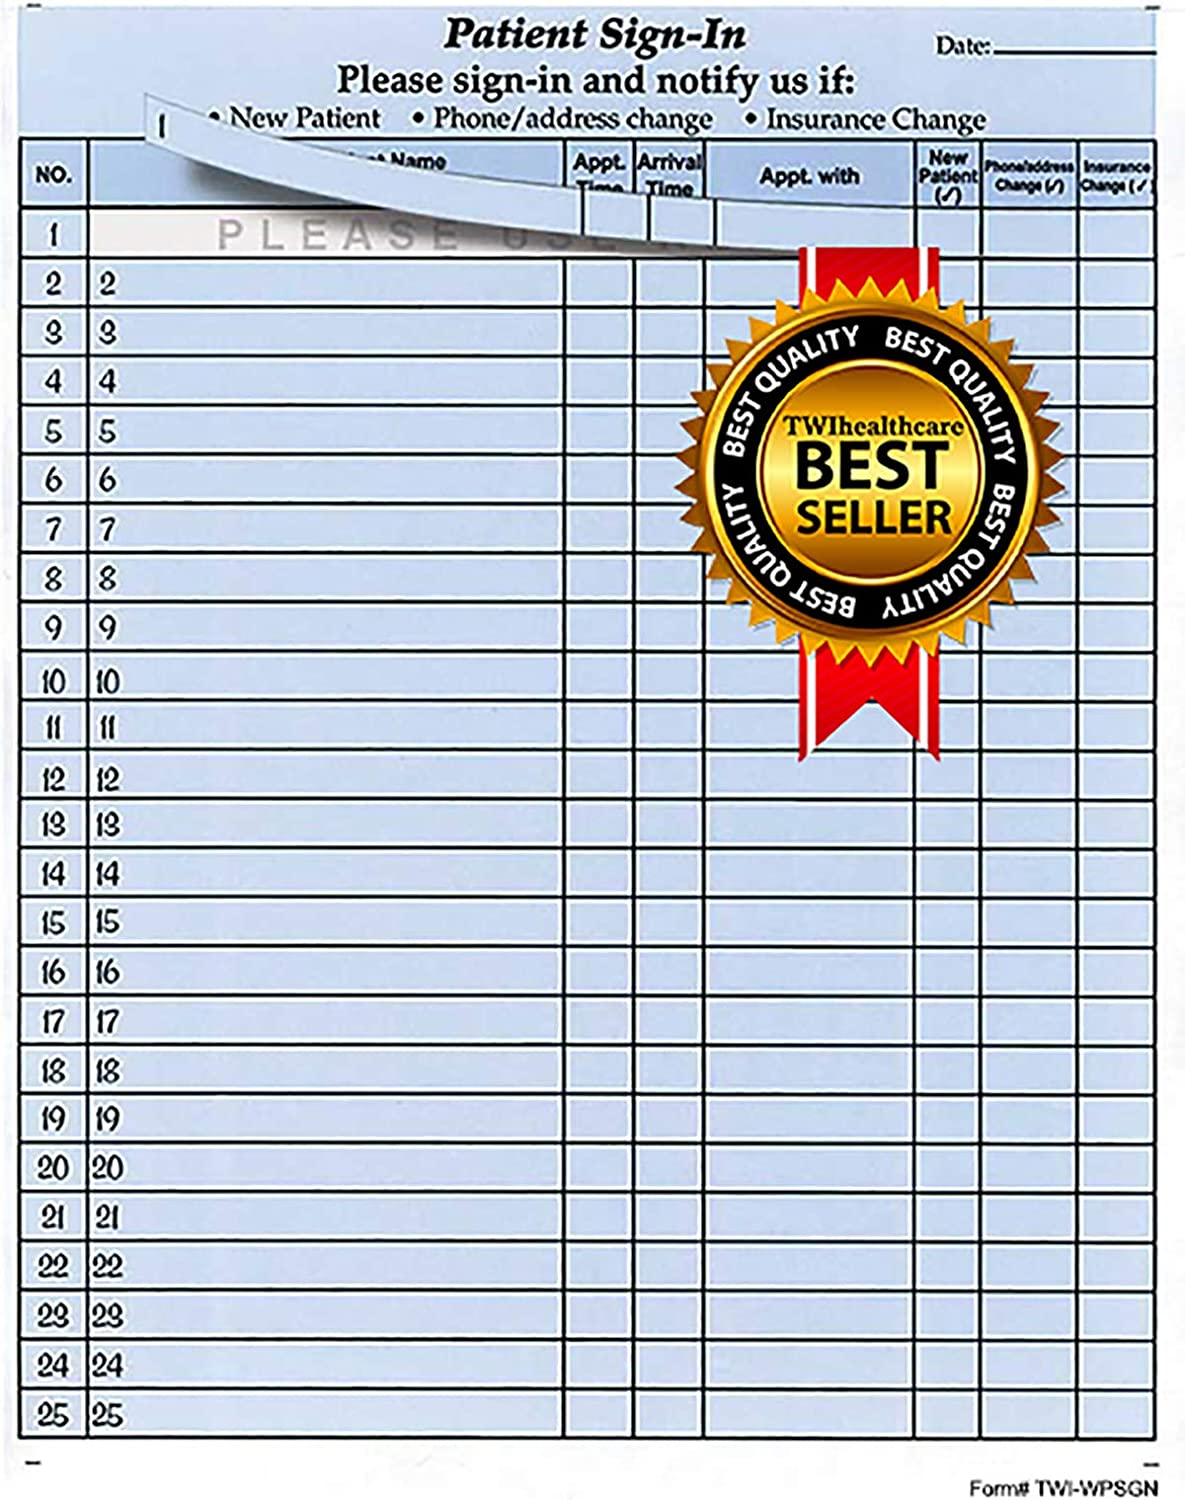 Patient Sign-in Sheets, 8-1/2